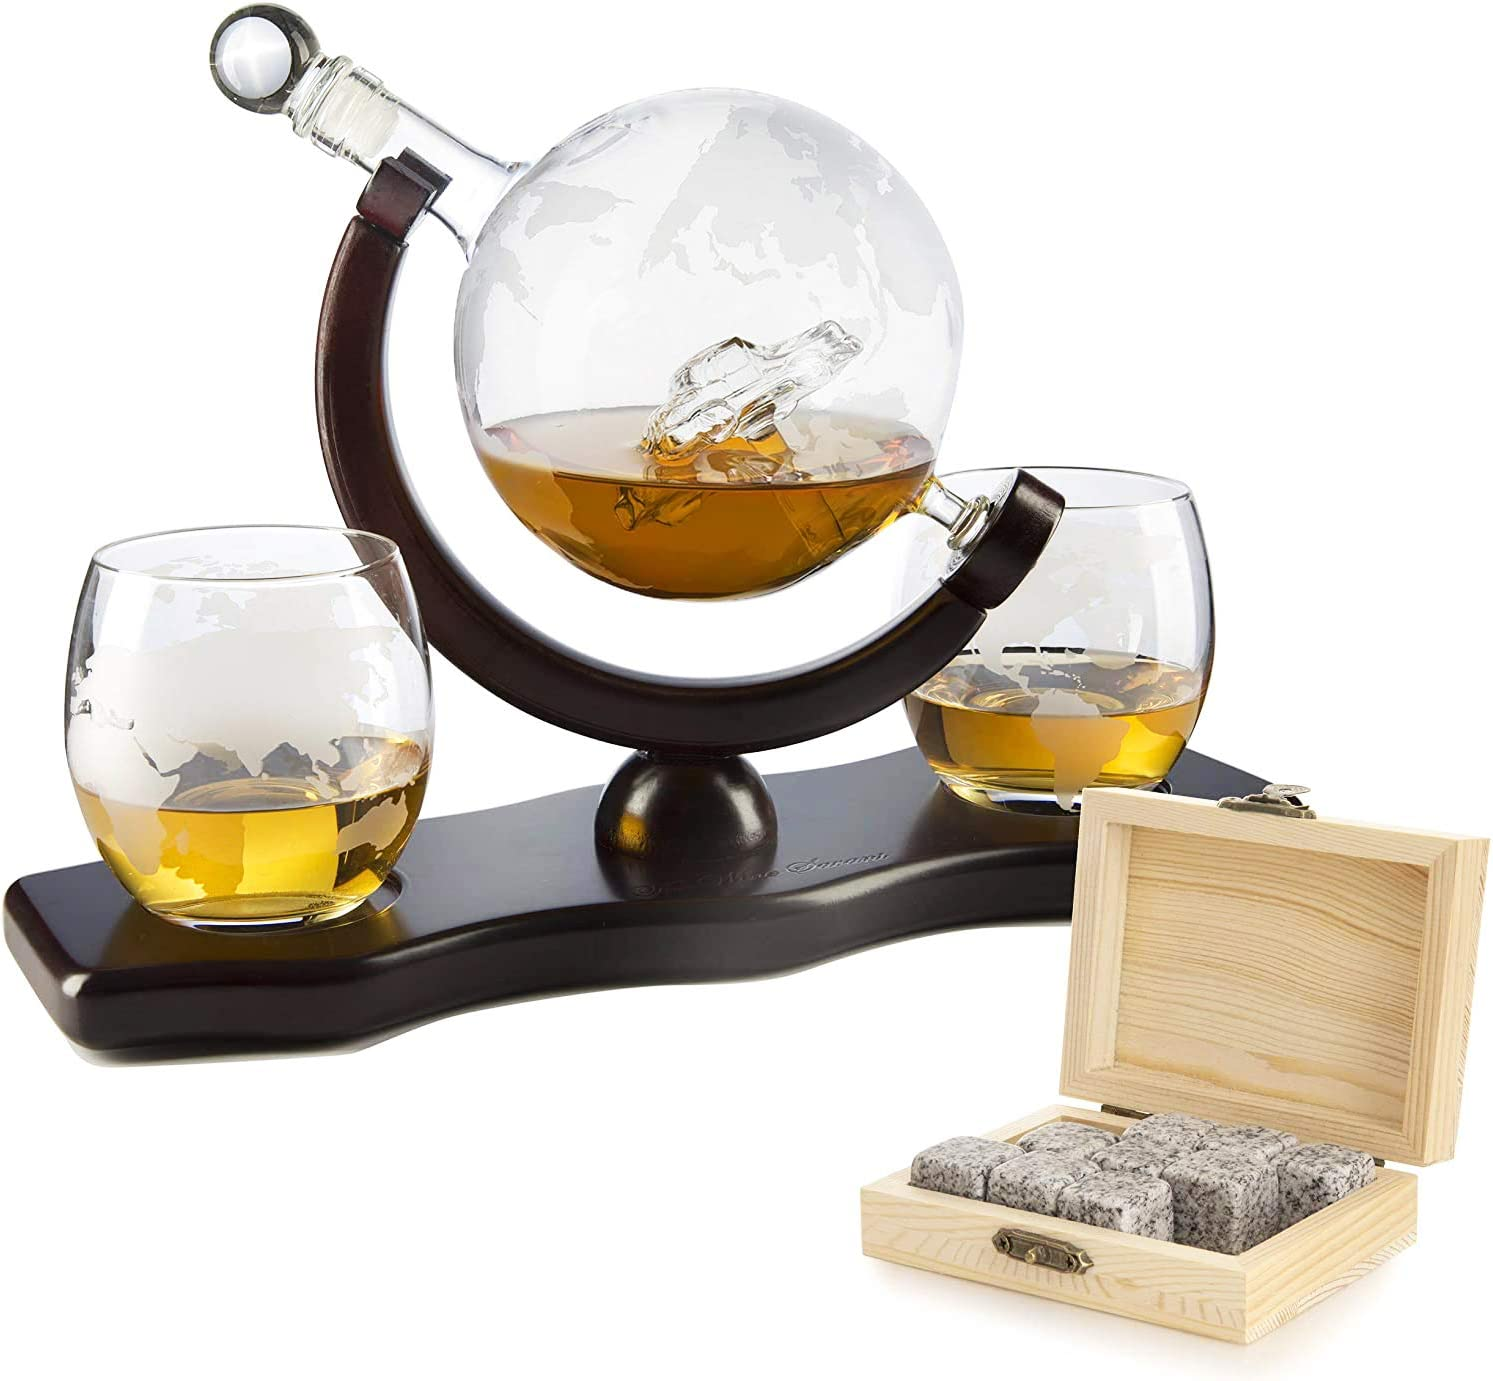 The Wine Savant Globe Car Whiskey Decanter - With 2 Globe Glasses, Includes Whiskey Stones For Whiskey, Scotch, Bourbon or Wine Matching Globe Glasses, HOME BAR DECOR